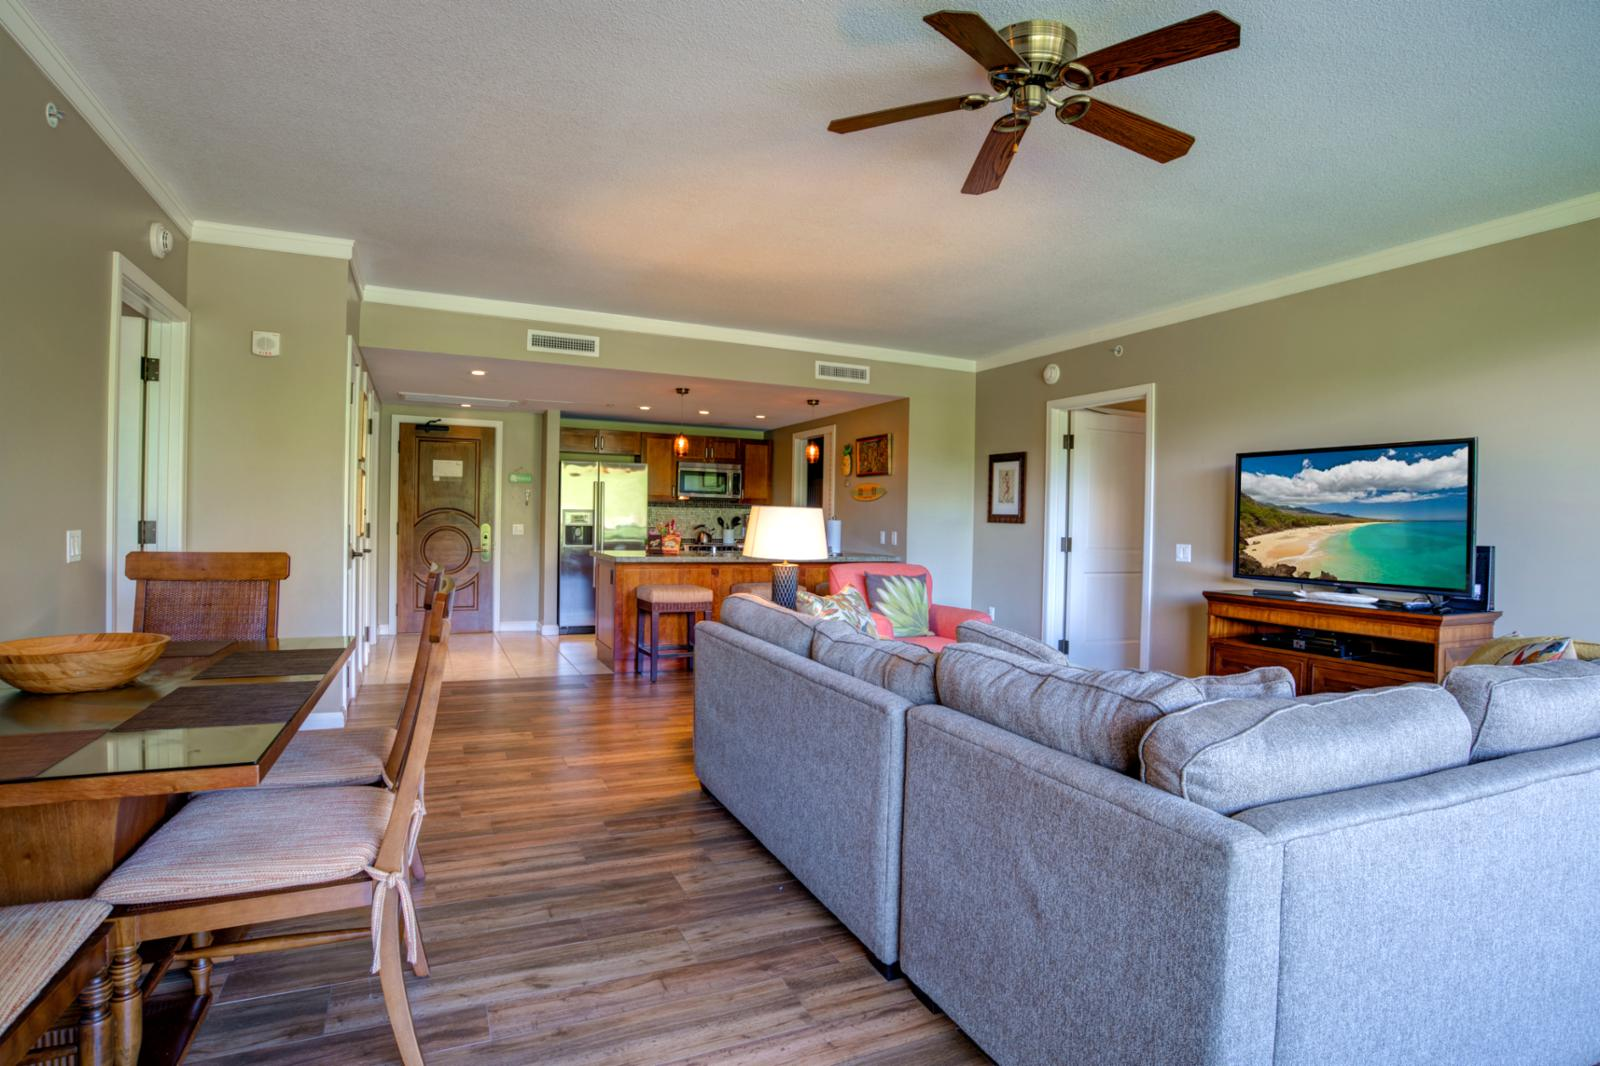 Comfortable seating and relaxing setting